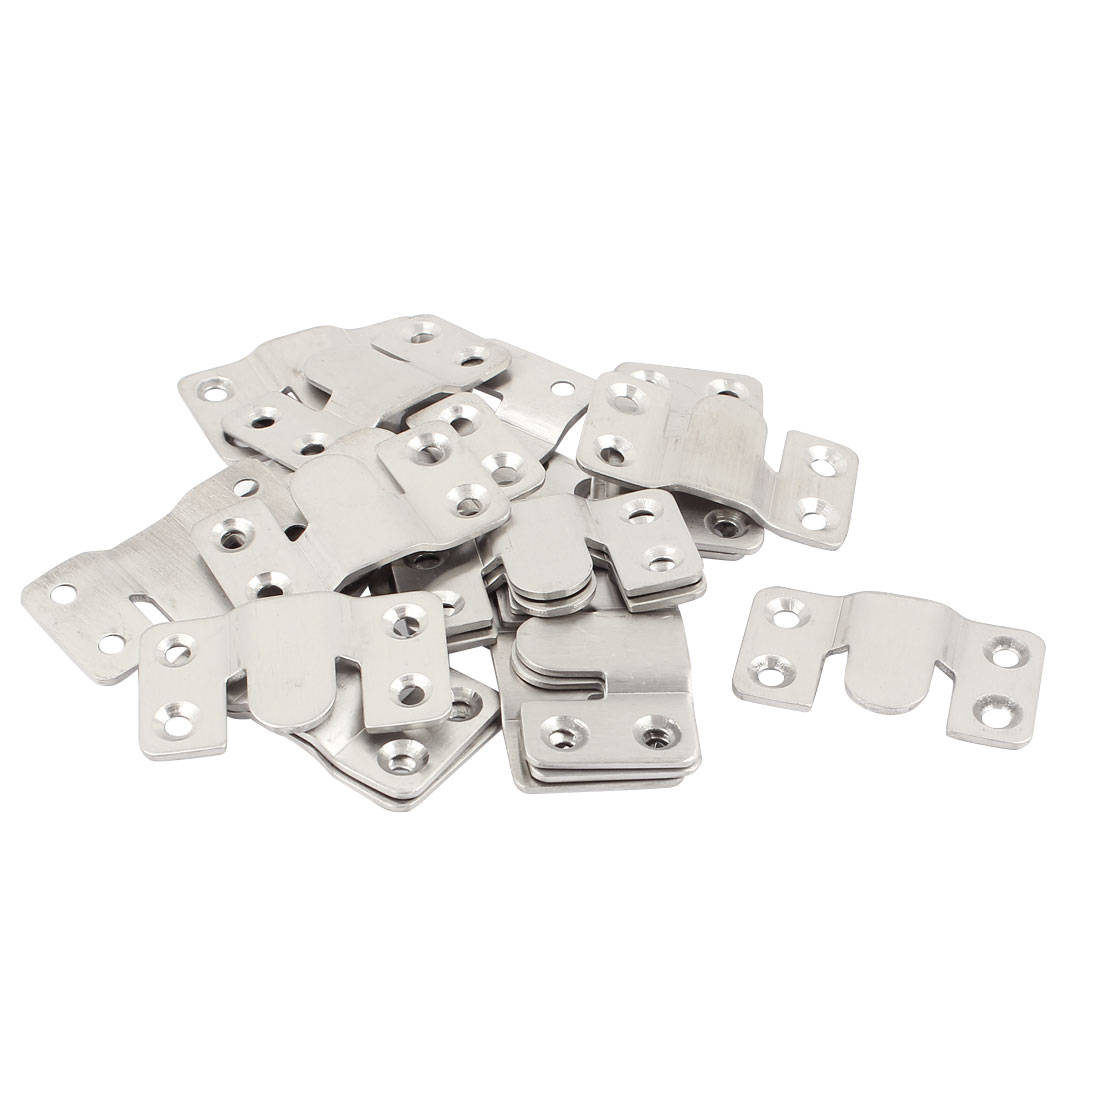 Stainless Steel Sofa Couch Sectional Furniture Connector 20pcs